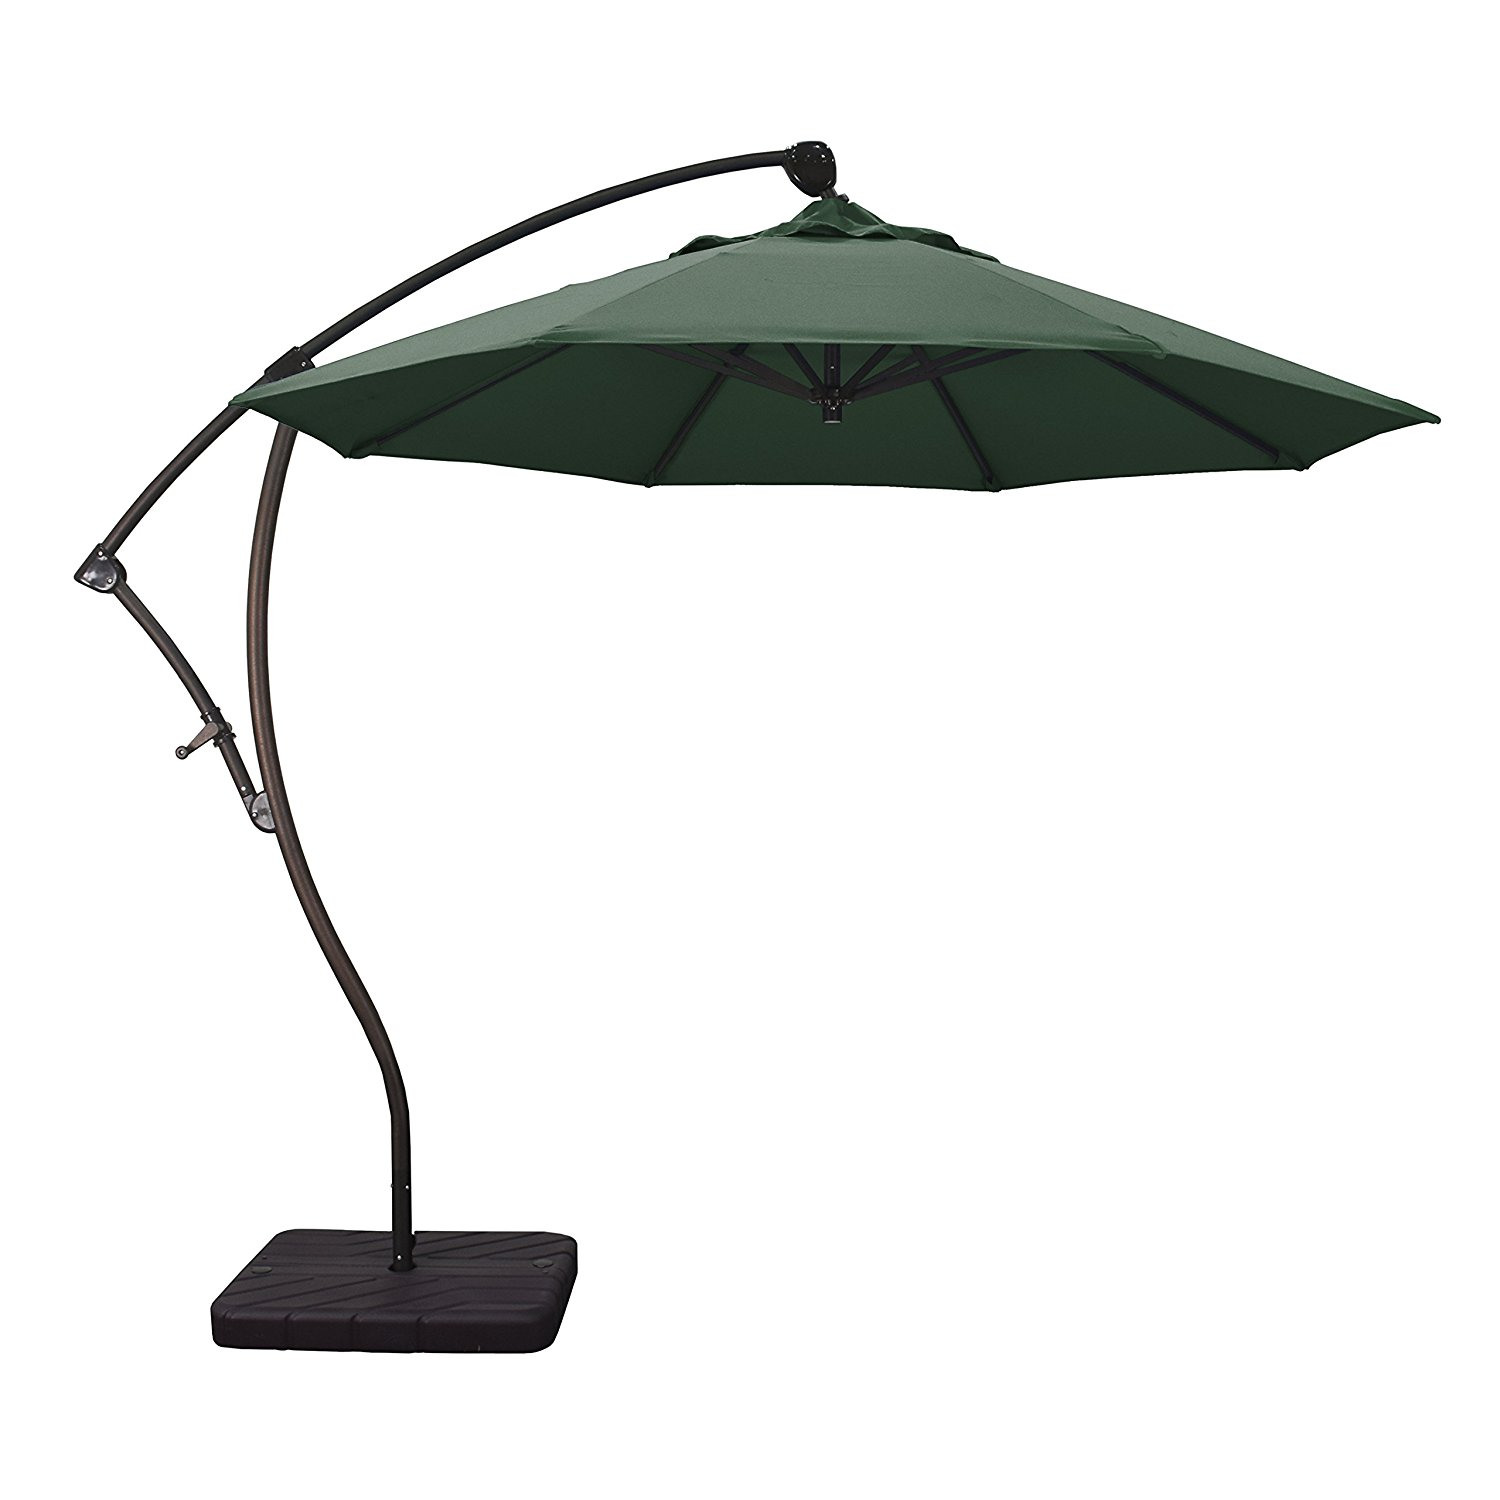 Get Quotations Phat Tommy 9 Ft Cantilever Offset Aluminum Market Patio Umbrella With Tilt For Shade